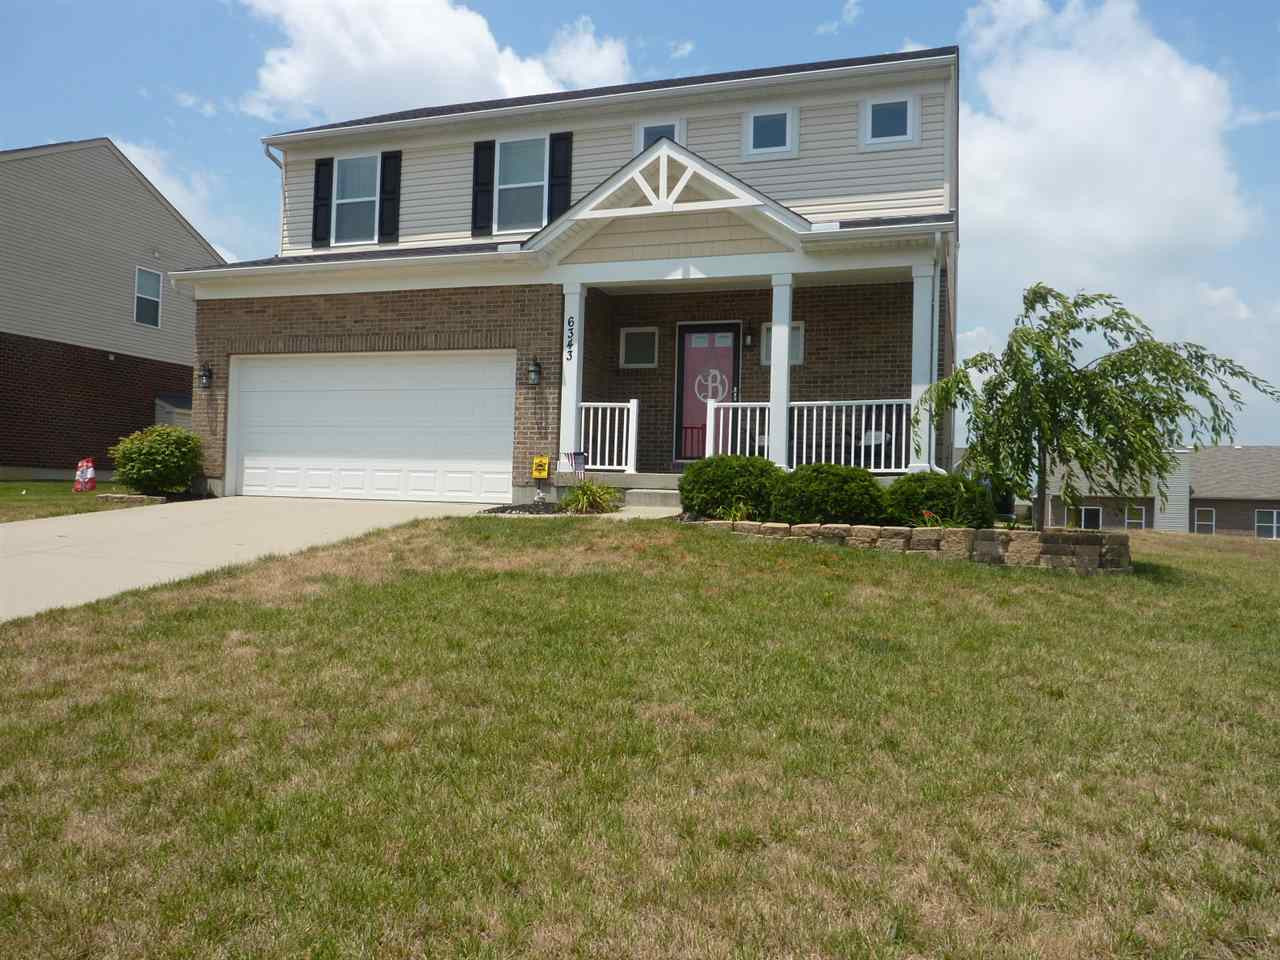 Photo 1 for 6343 Arabian Dr Independence, KY 41051